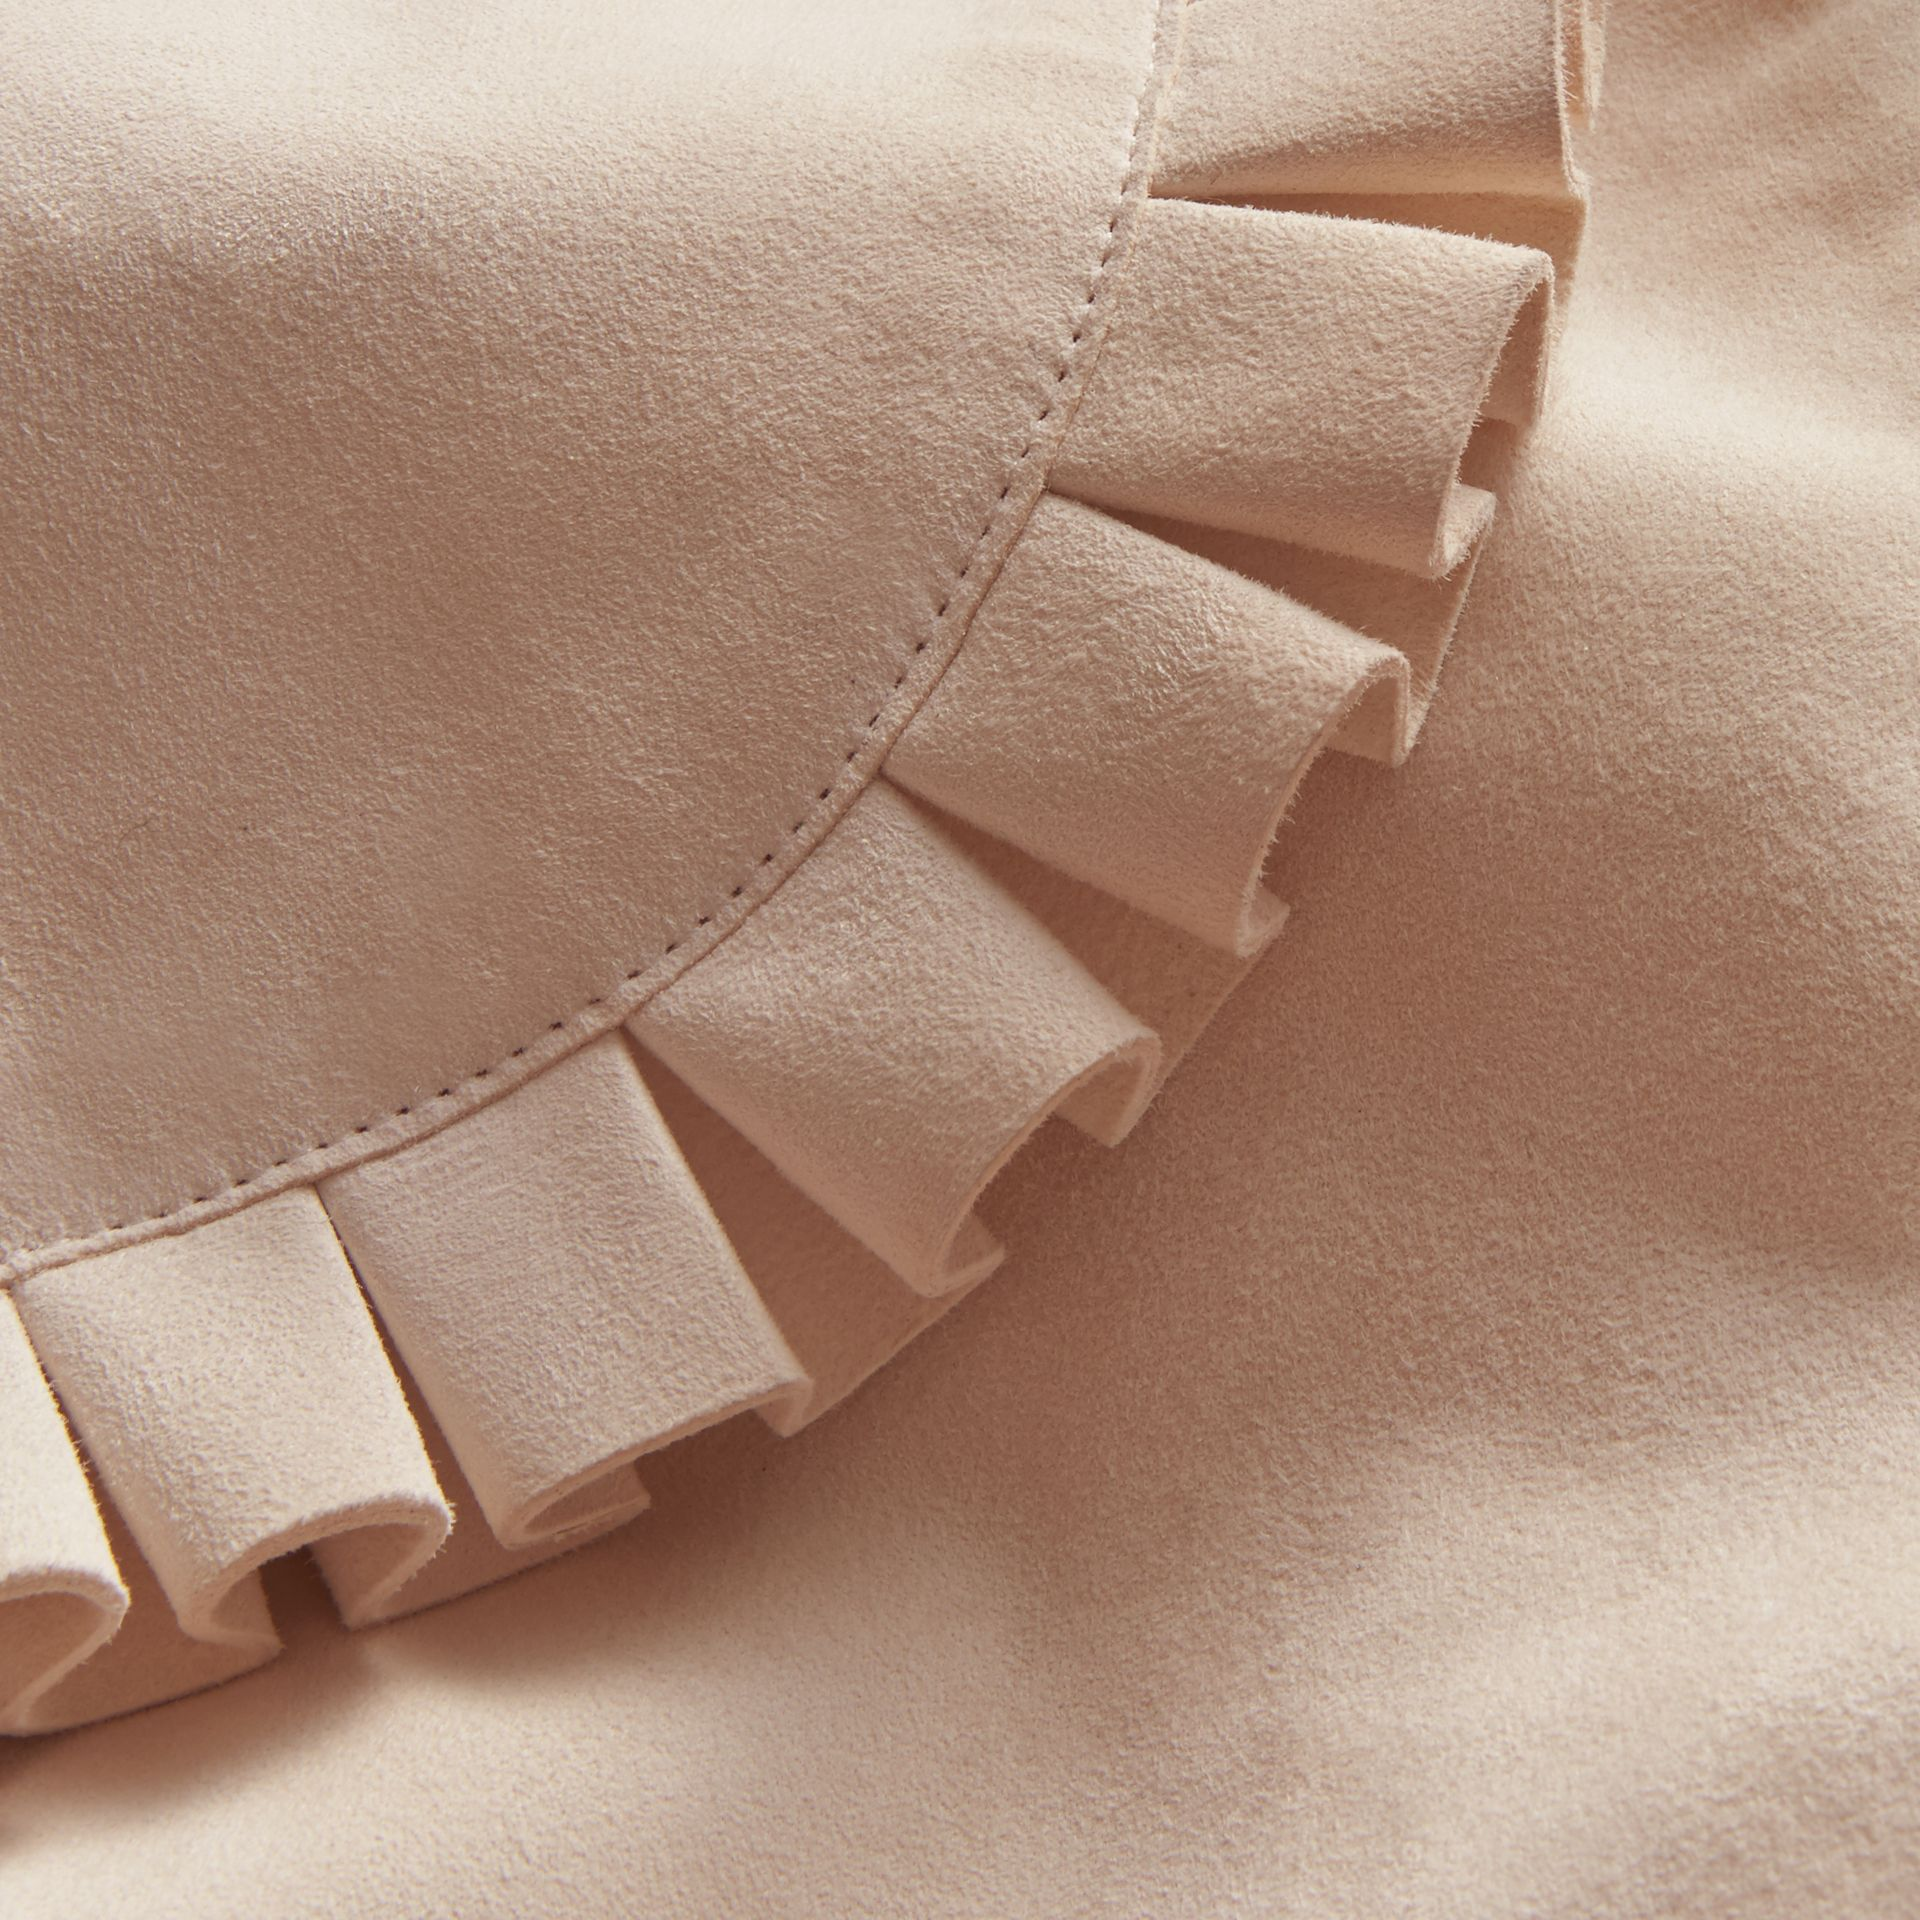 Ruffled Suede Cropped Cape in White - Women | Burberry - gallery image 2